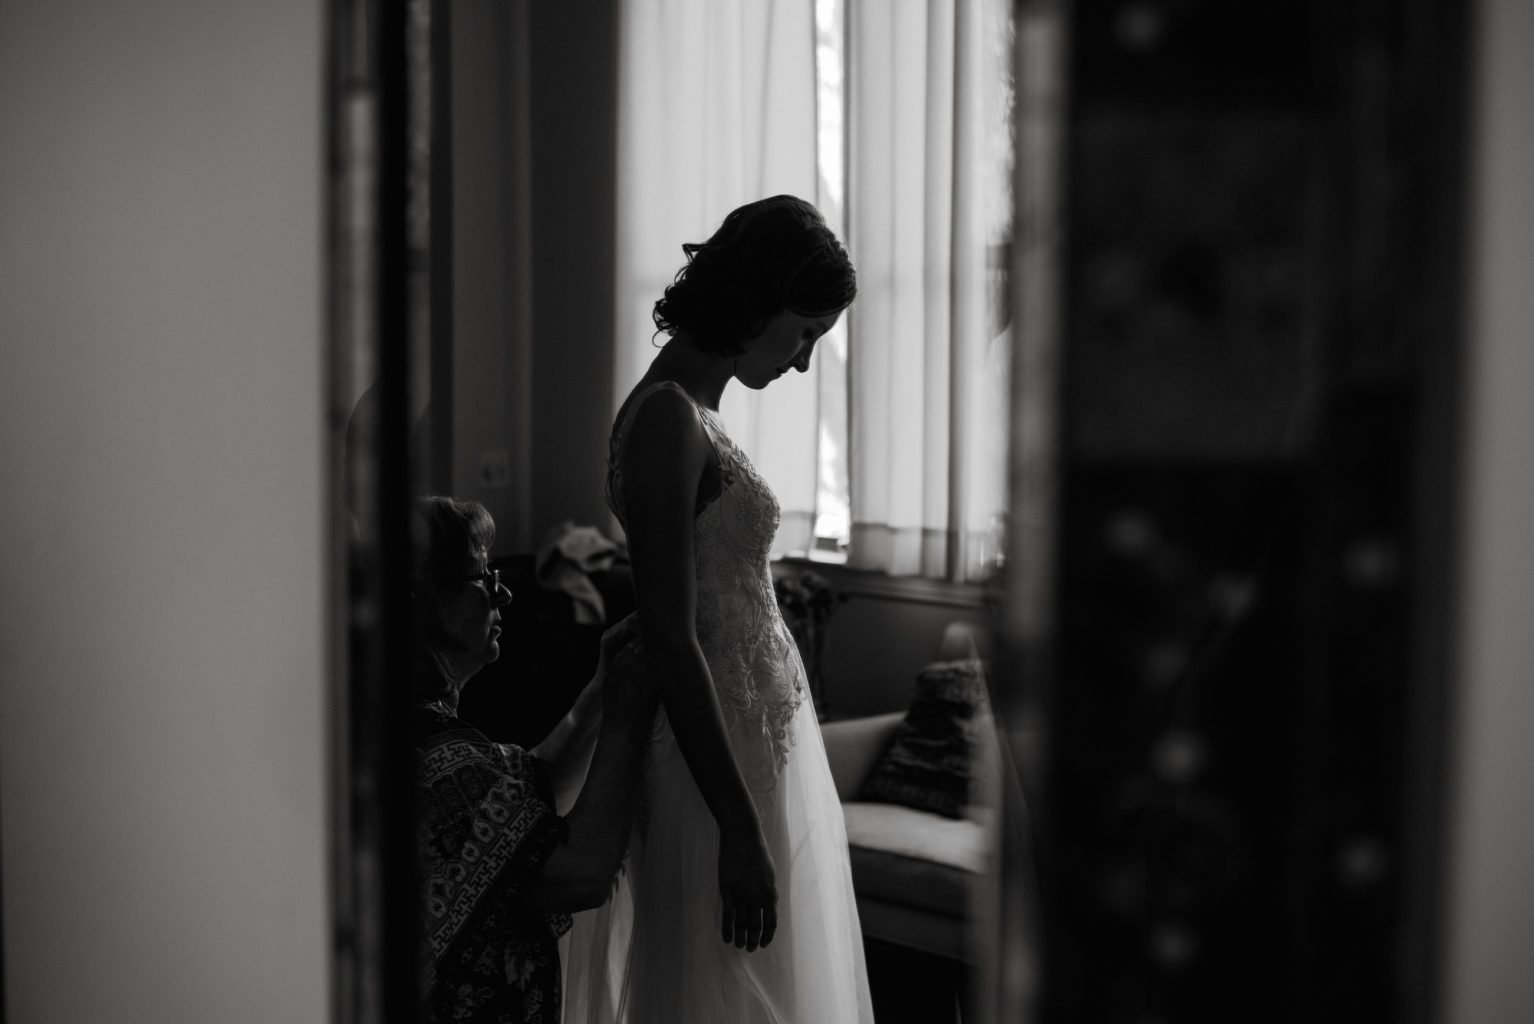 bride silhouetted against a window gets ready for her Austin wedding, storytelling wedding photography in Austin, Texas wedding photographer